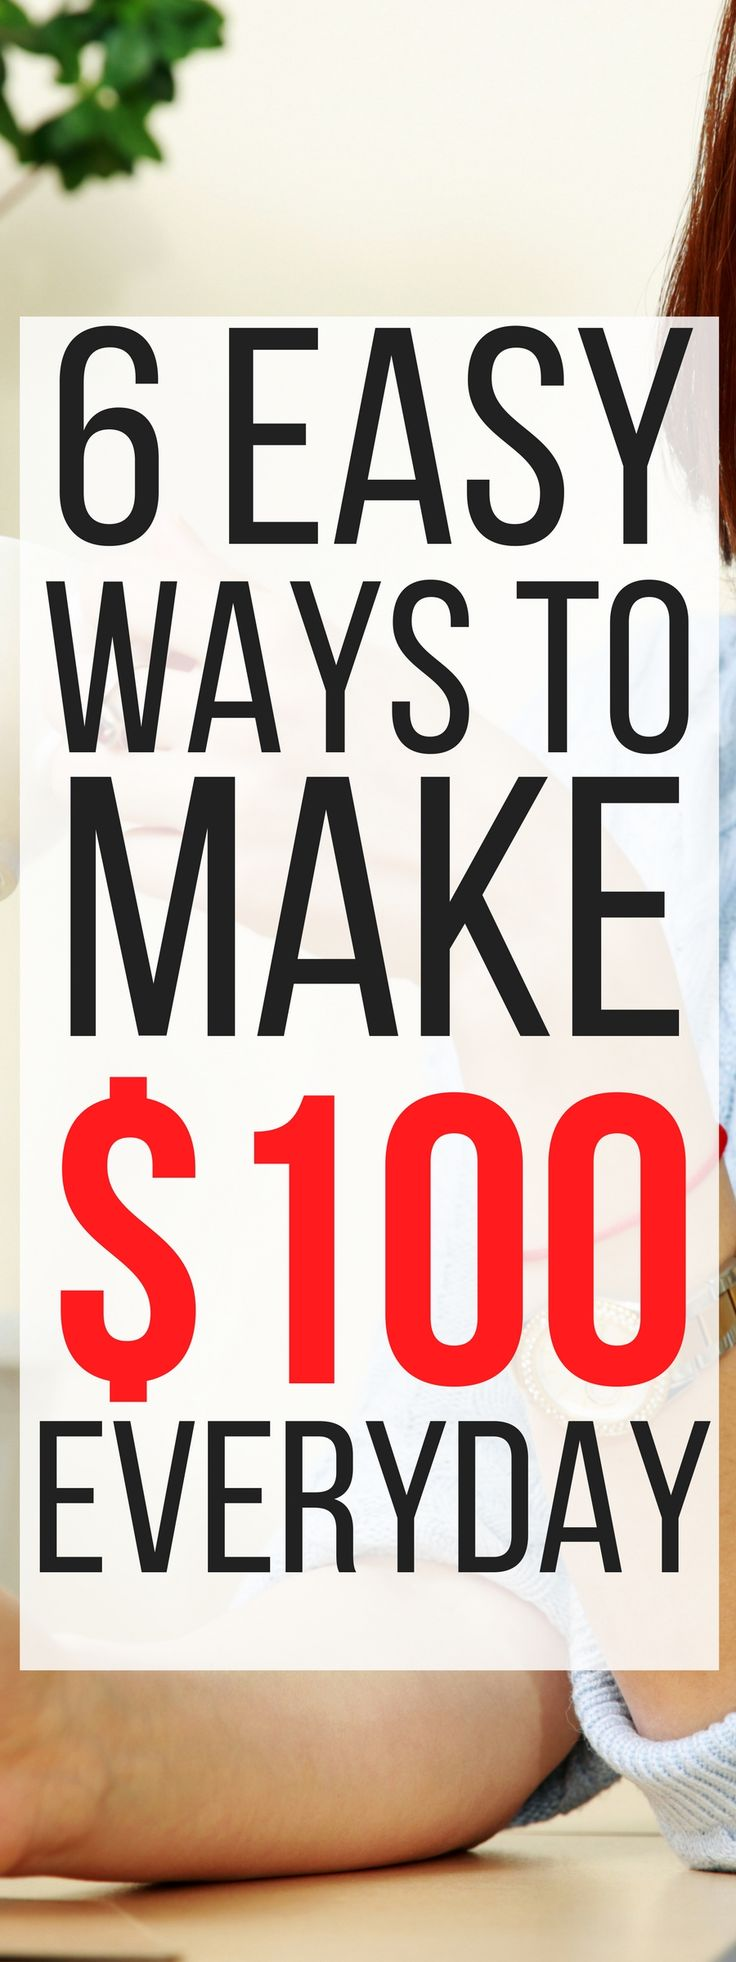 These 6 ways to make an extra $100 in a day are THE BEST! I'm so glad I found this, now I can make extra money in my spare time with these ideas. Pinning for sure! #MakeMoneyOnline #money #makemoneyfromhome